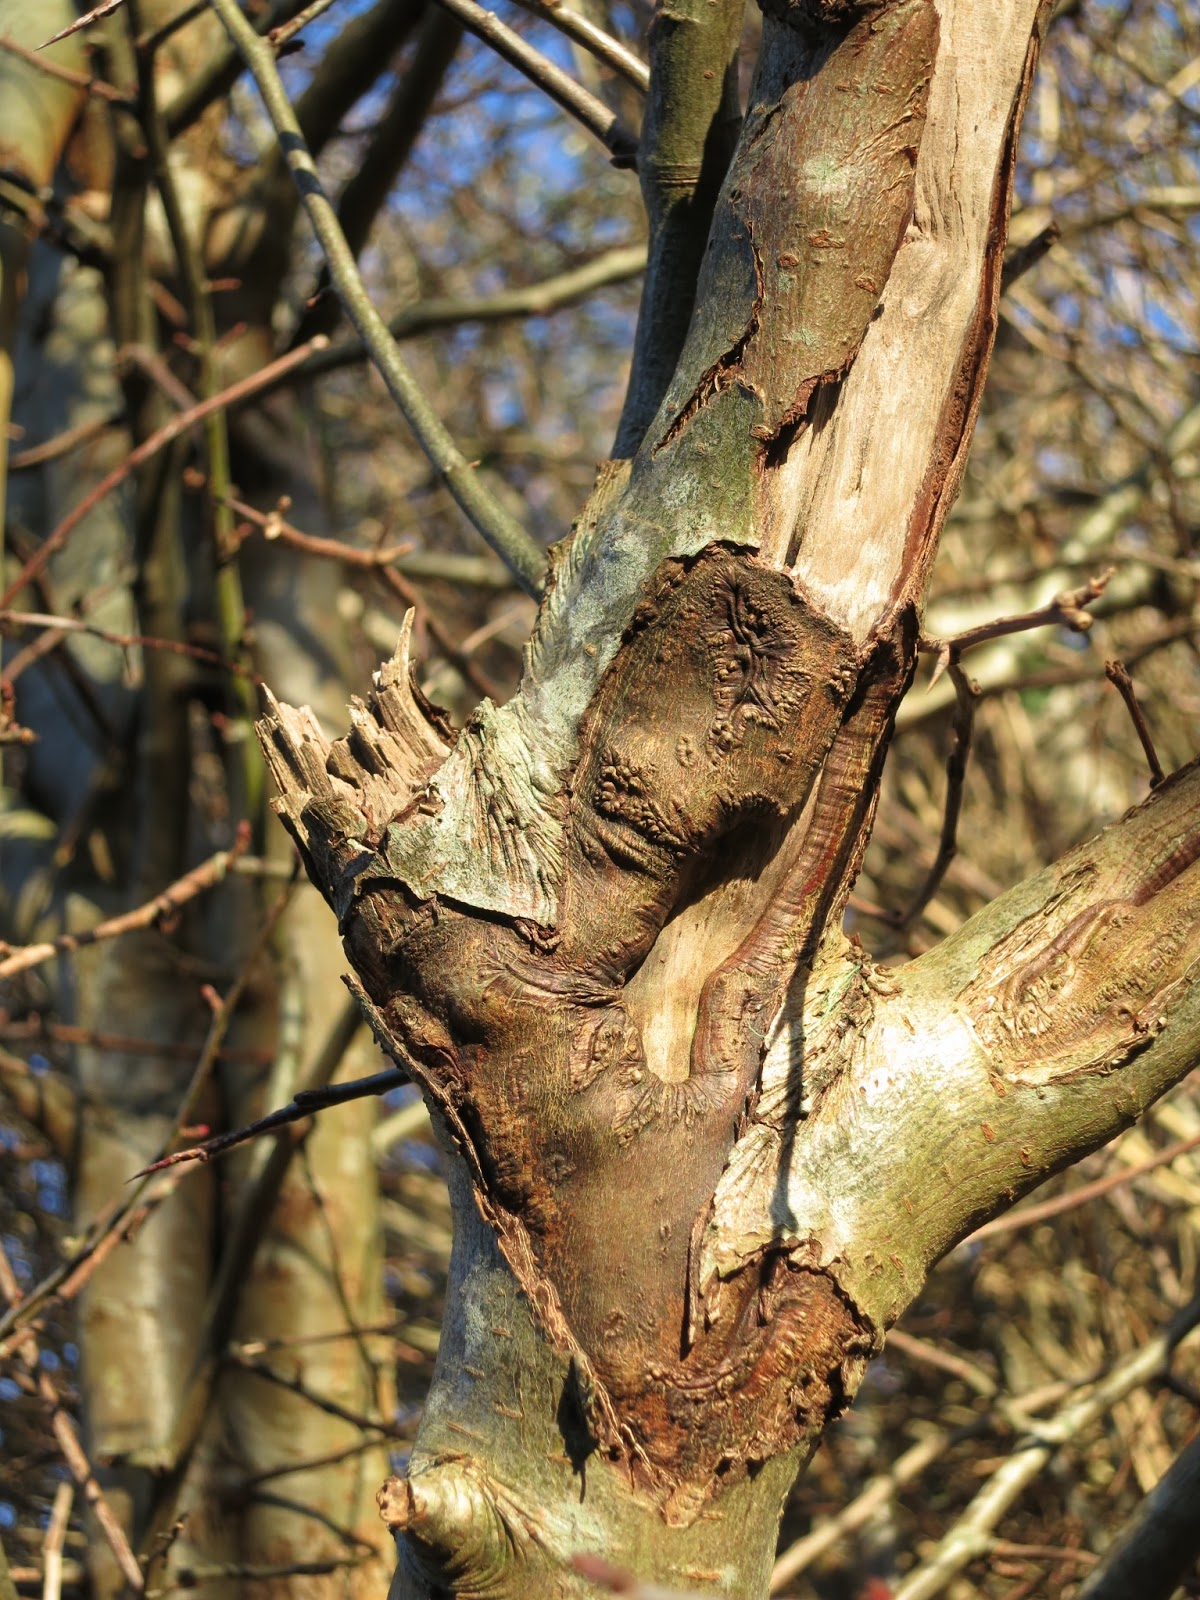 Broken branch, peeled back bark and scars on small tree (hawthorn?) in winter